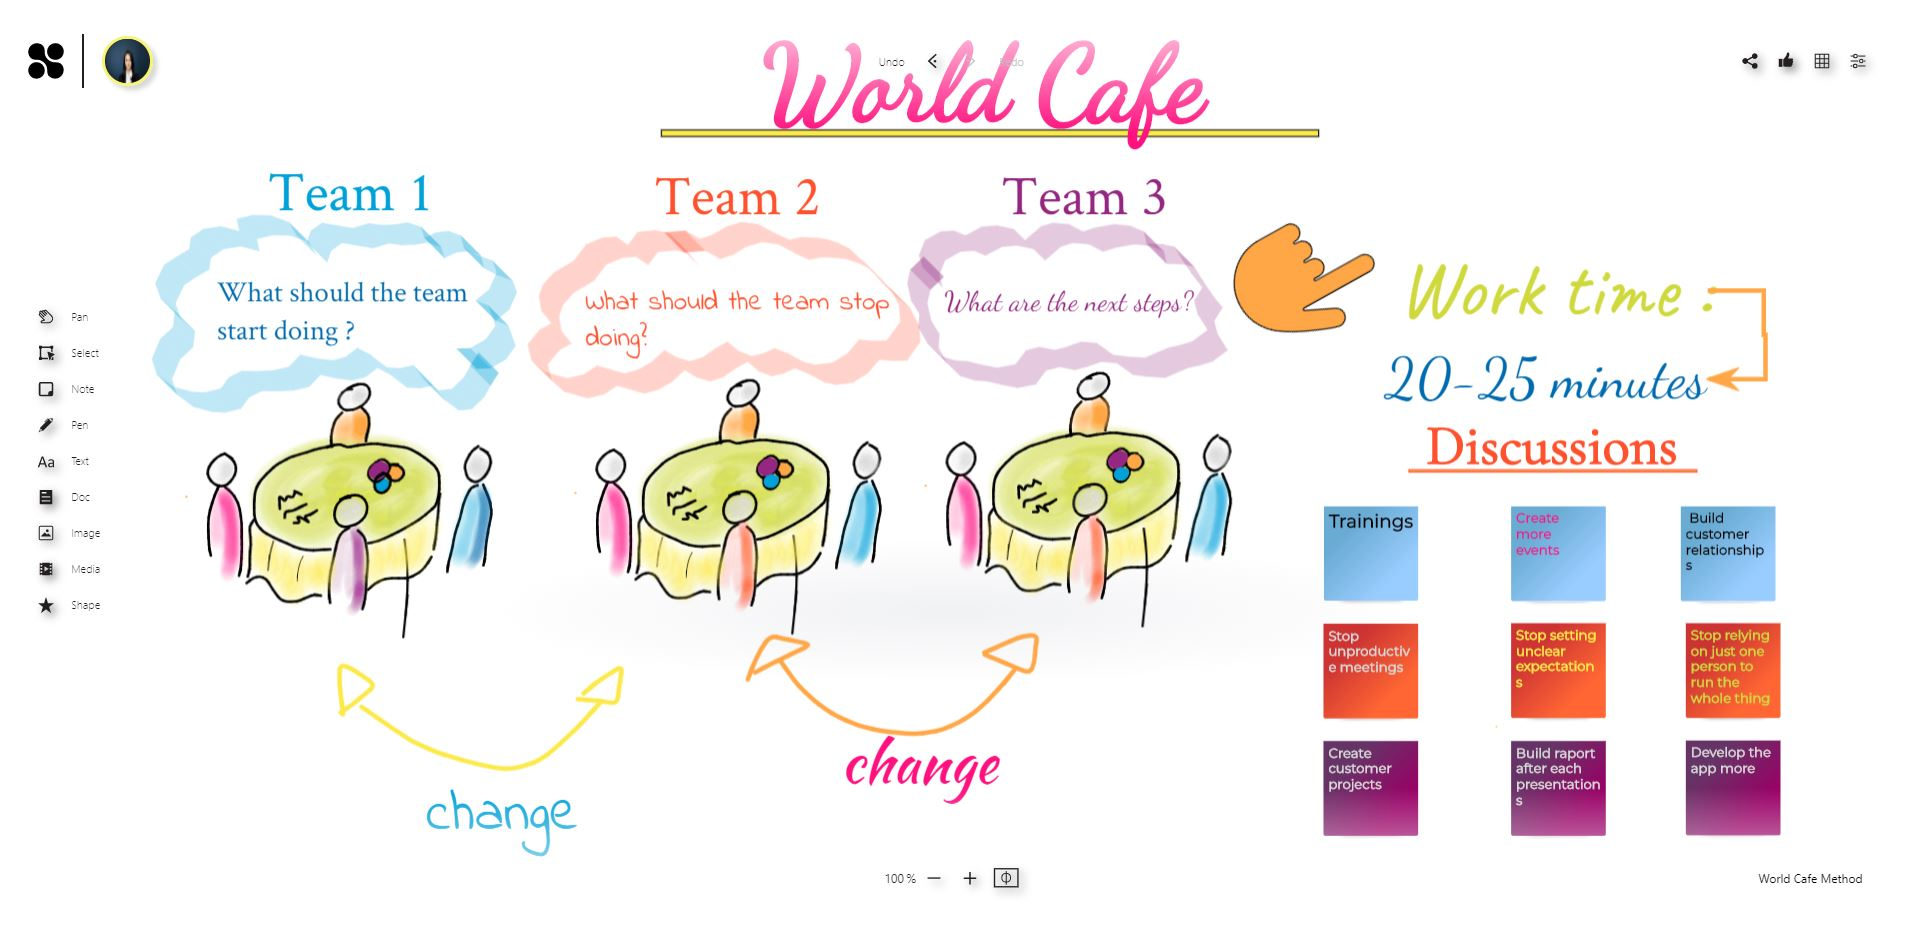 World Cafe workshop with the online whiteboard